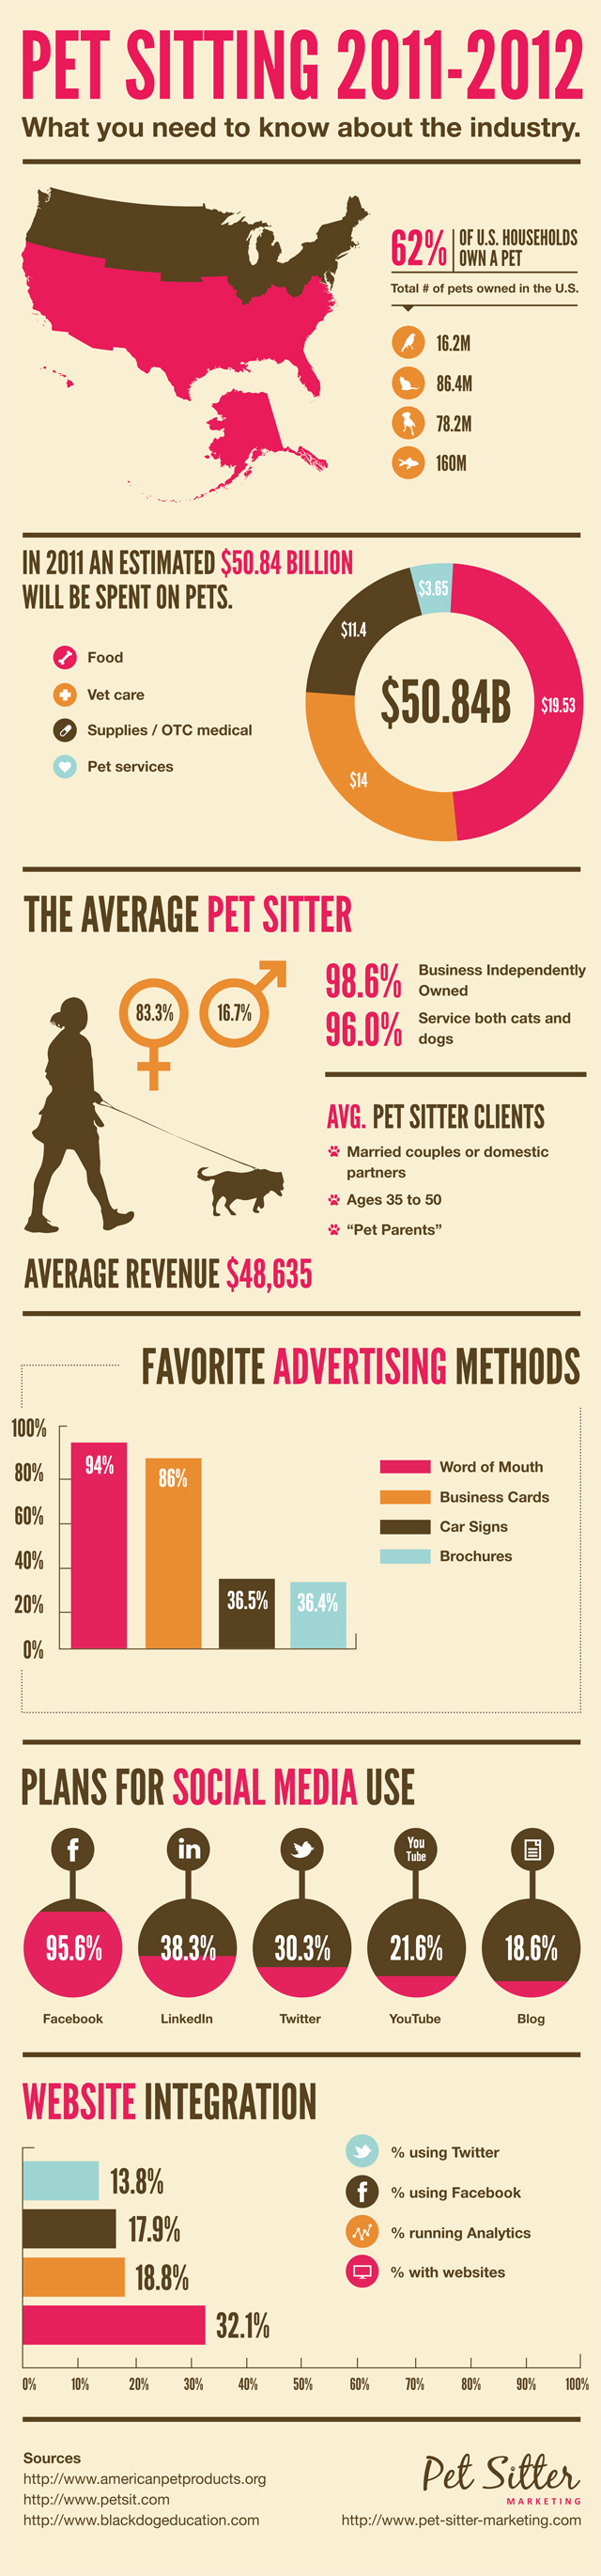 Pet Sitting Business Names Ideas | Oxynux.Org